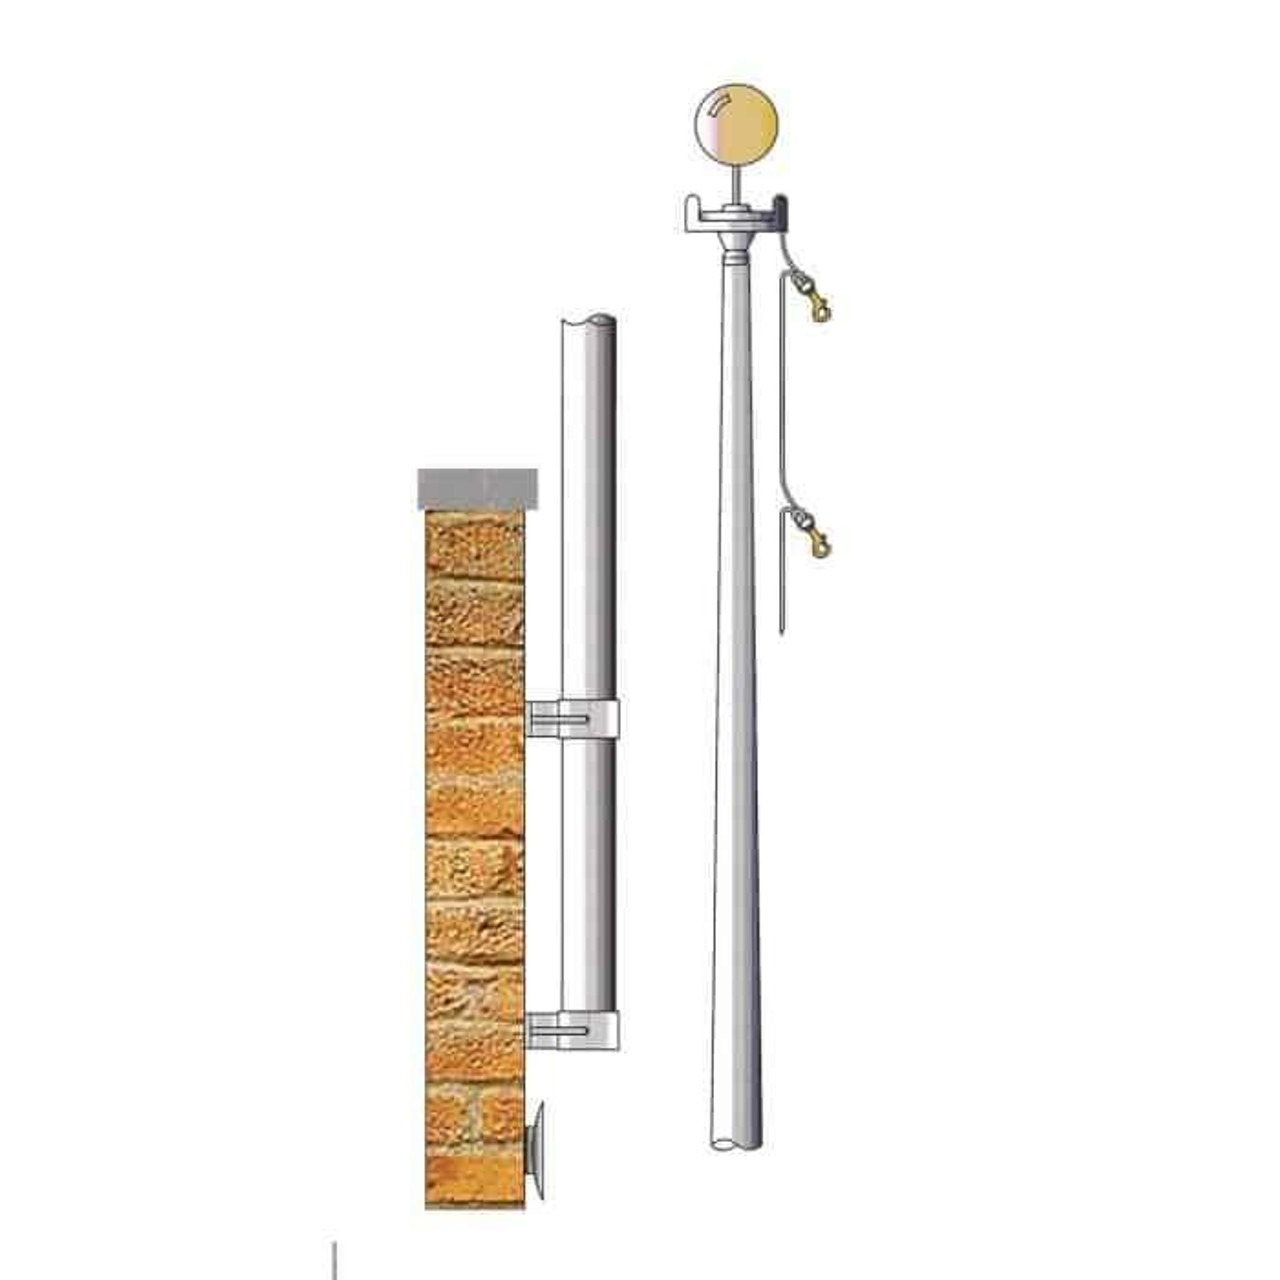 12 Vertical Wall Mounted Flagpole EVWS12